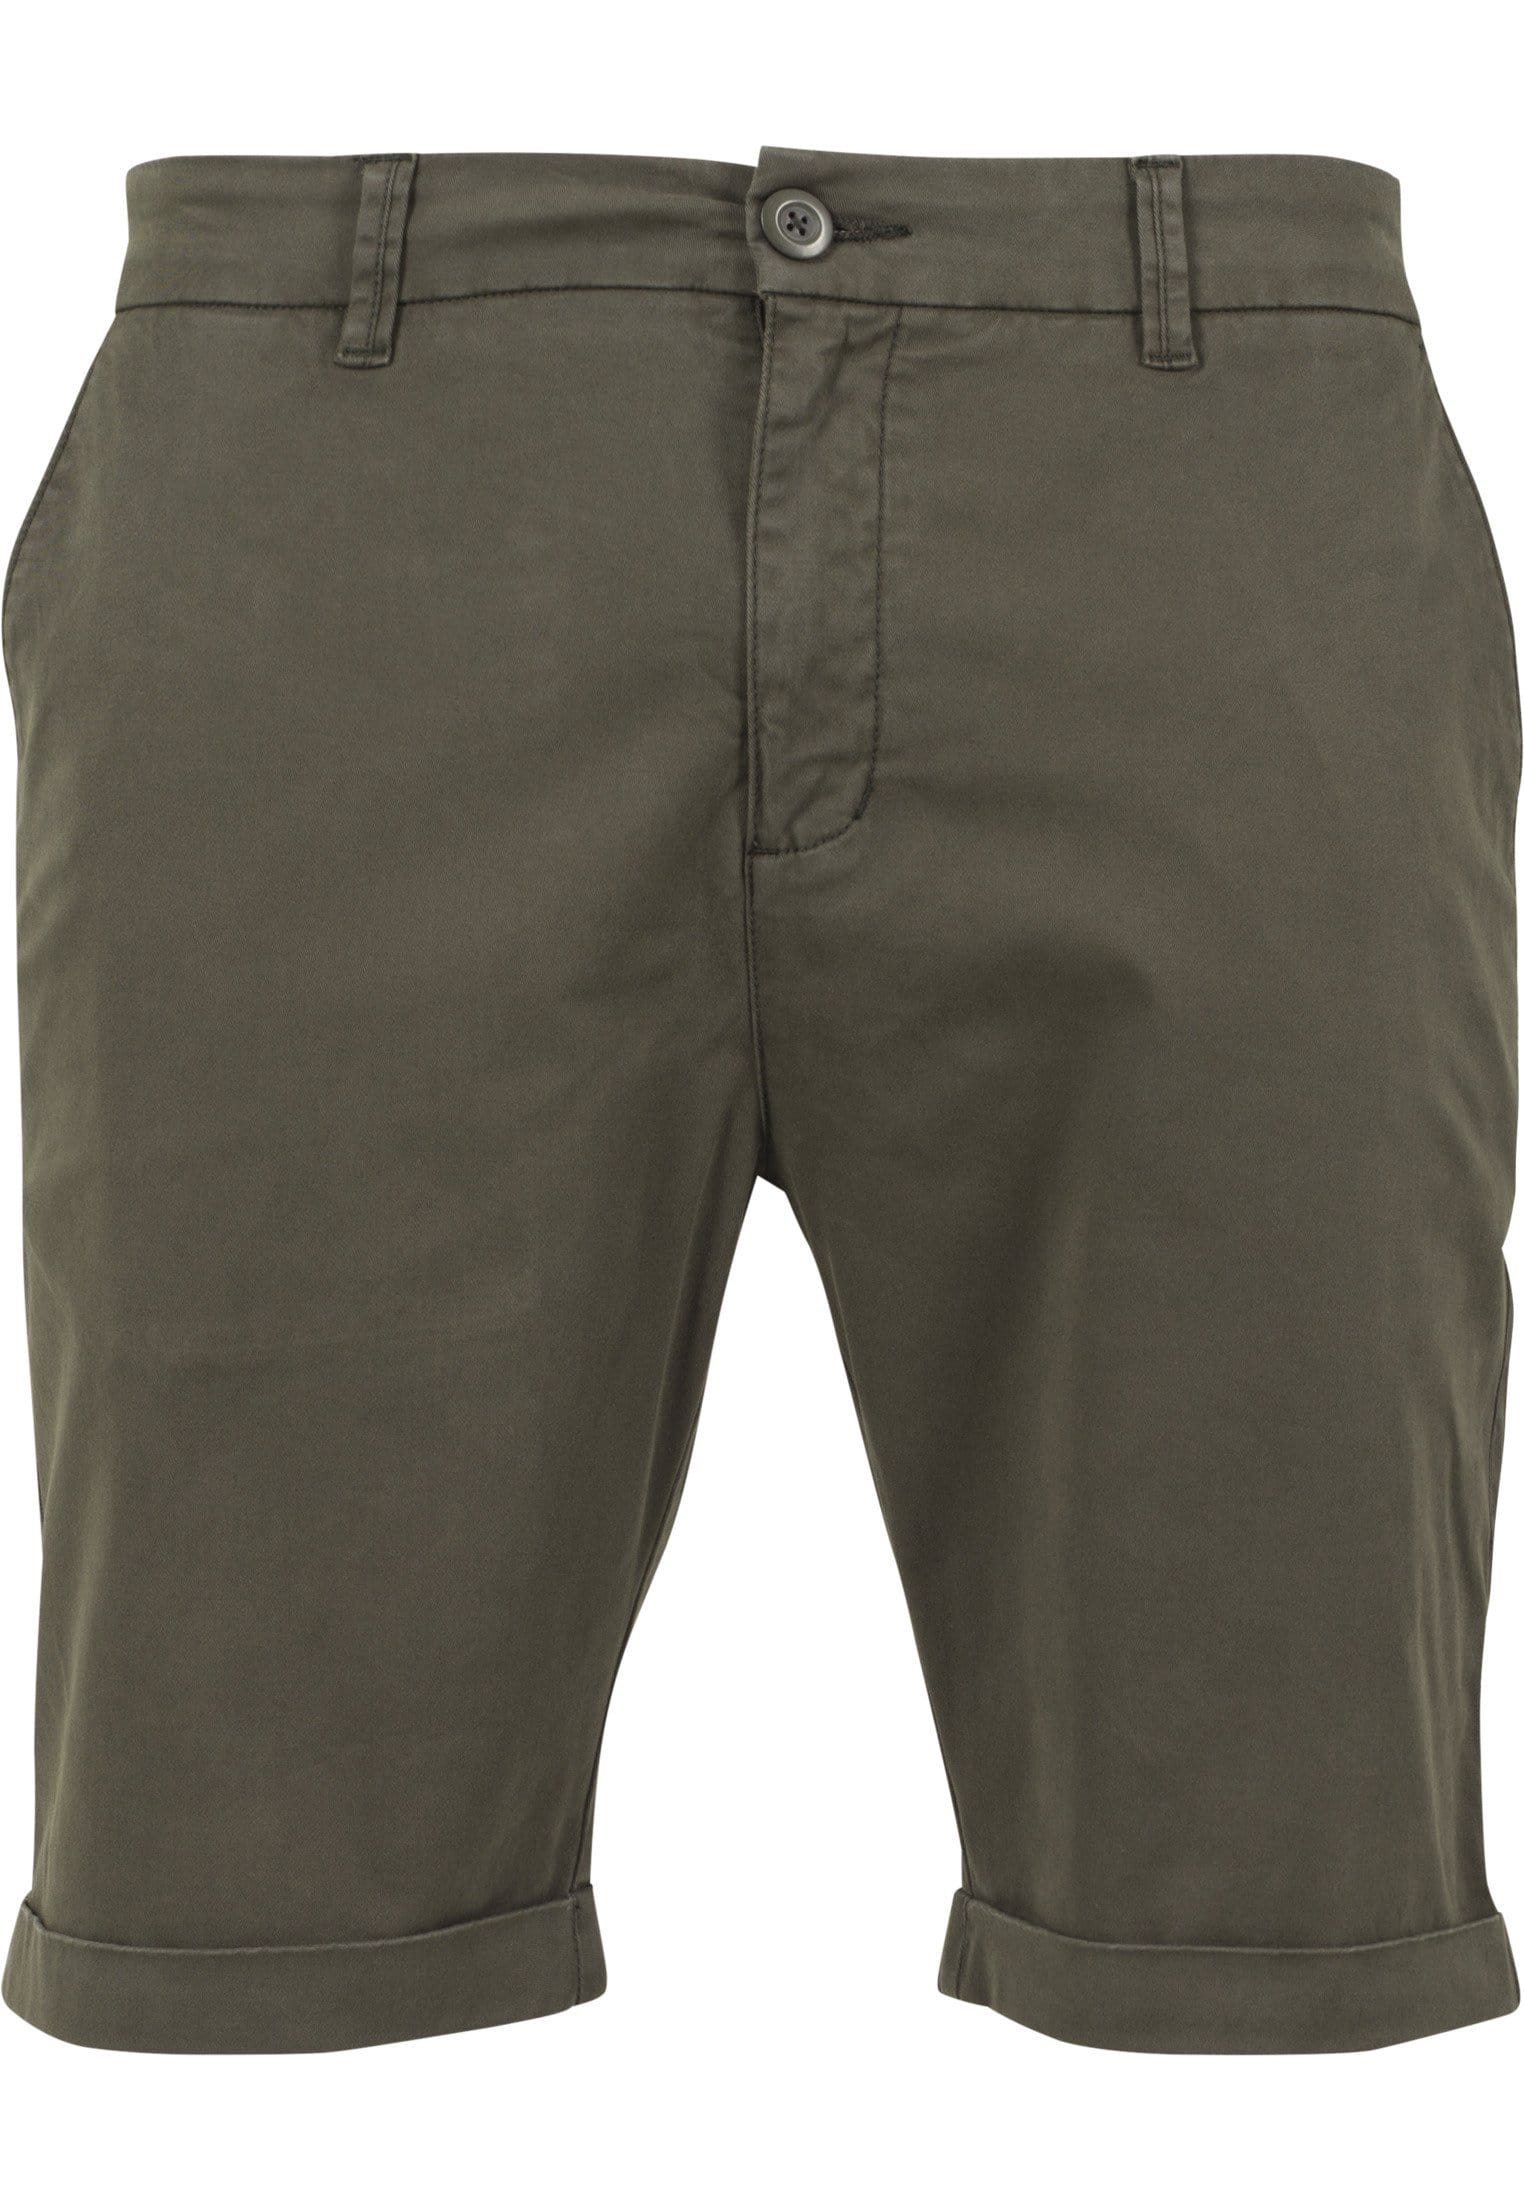 Image of   Stretch Turnup Chino Shorts - Army